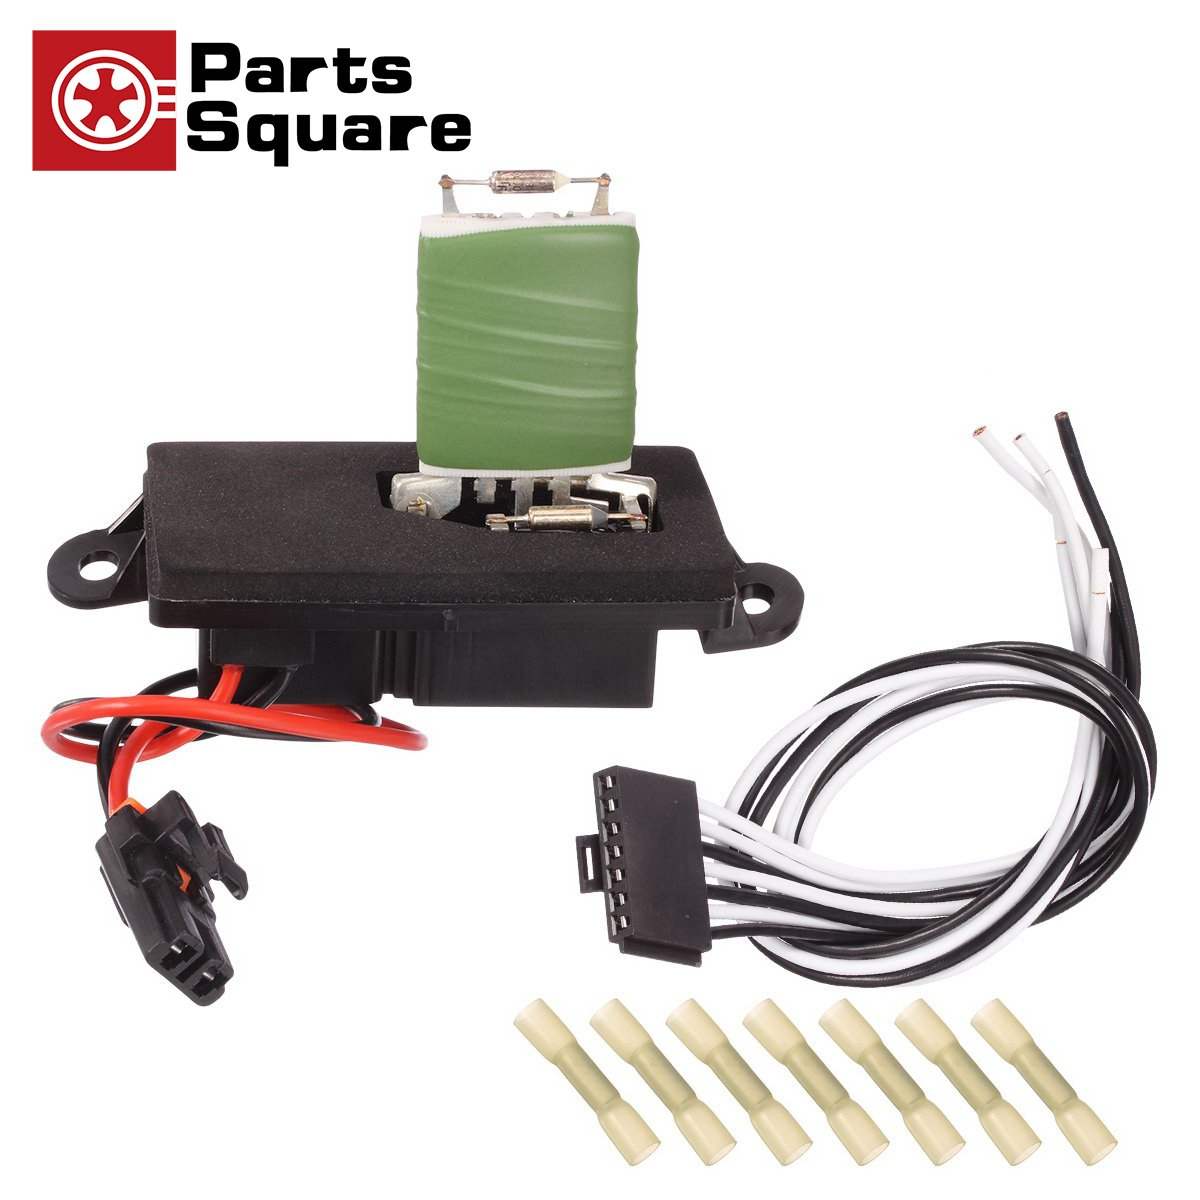 PartsSquare Manual HVAC Blower Motor Resistor 15305077 + 15862656 Wire Harness Connector Replacement for 2002 2003 2004 2005 2006 CHEVROLET AVALANCHE 1500 2001 2002 2003 2004 CHEVROLET SILVERADO 1500 by PartsSquare